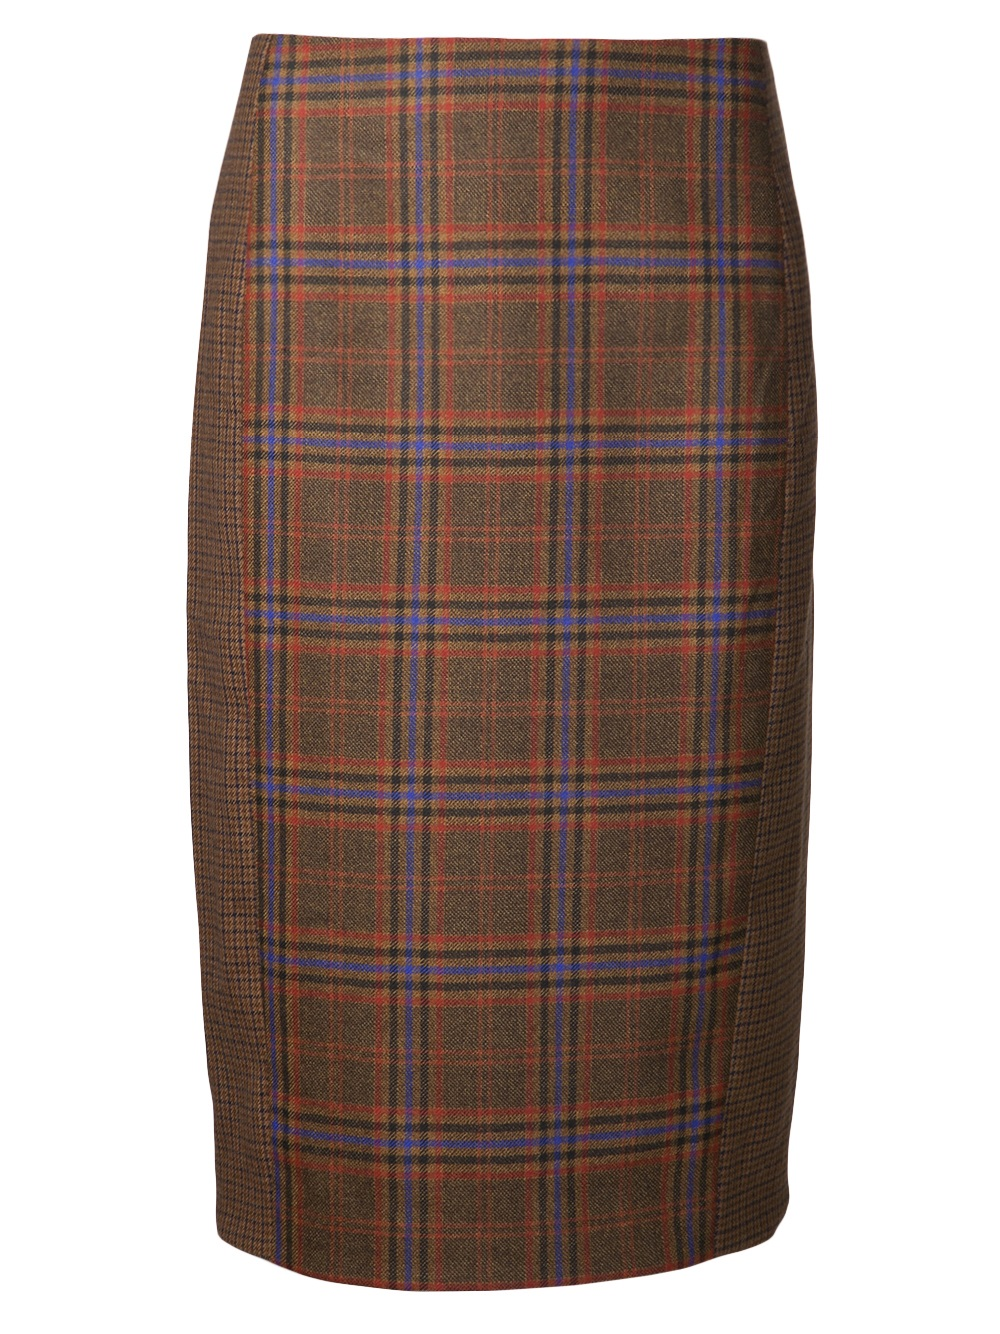 Lyst - Jenni Kayne Cut Out Pencil Skirt In Brown-5326